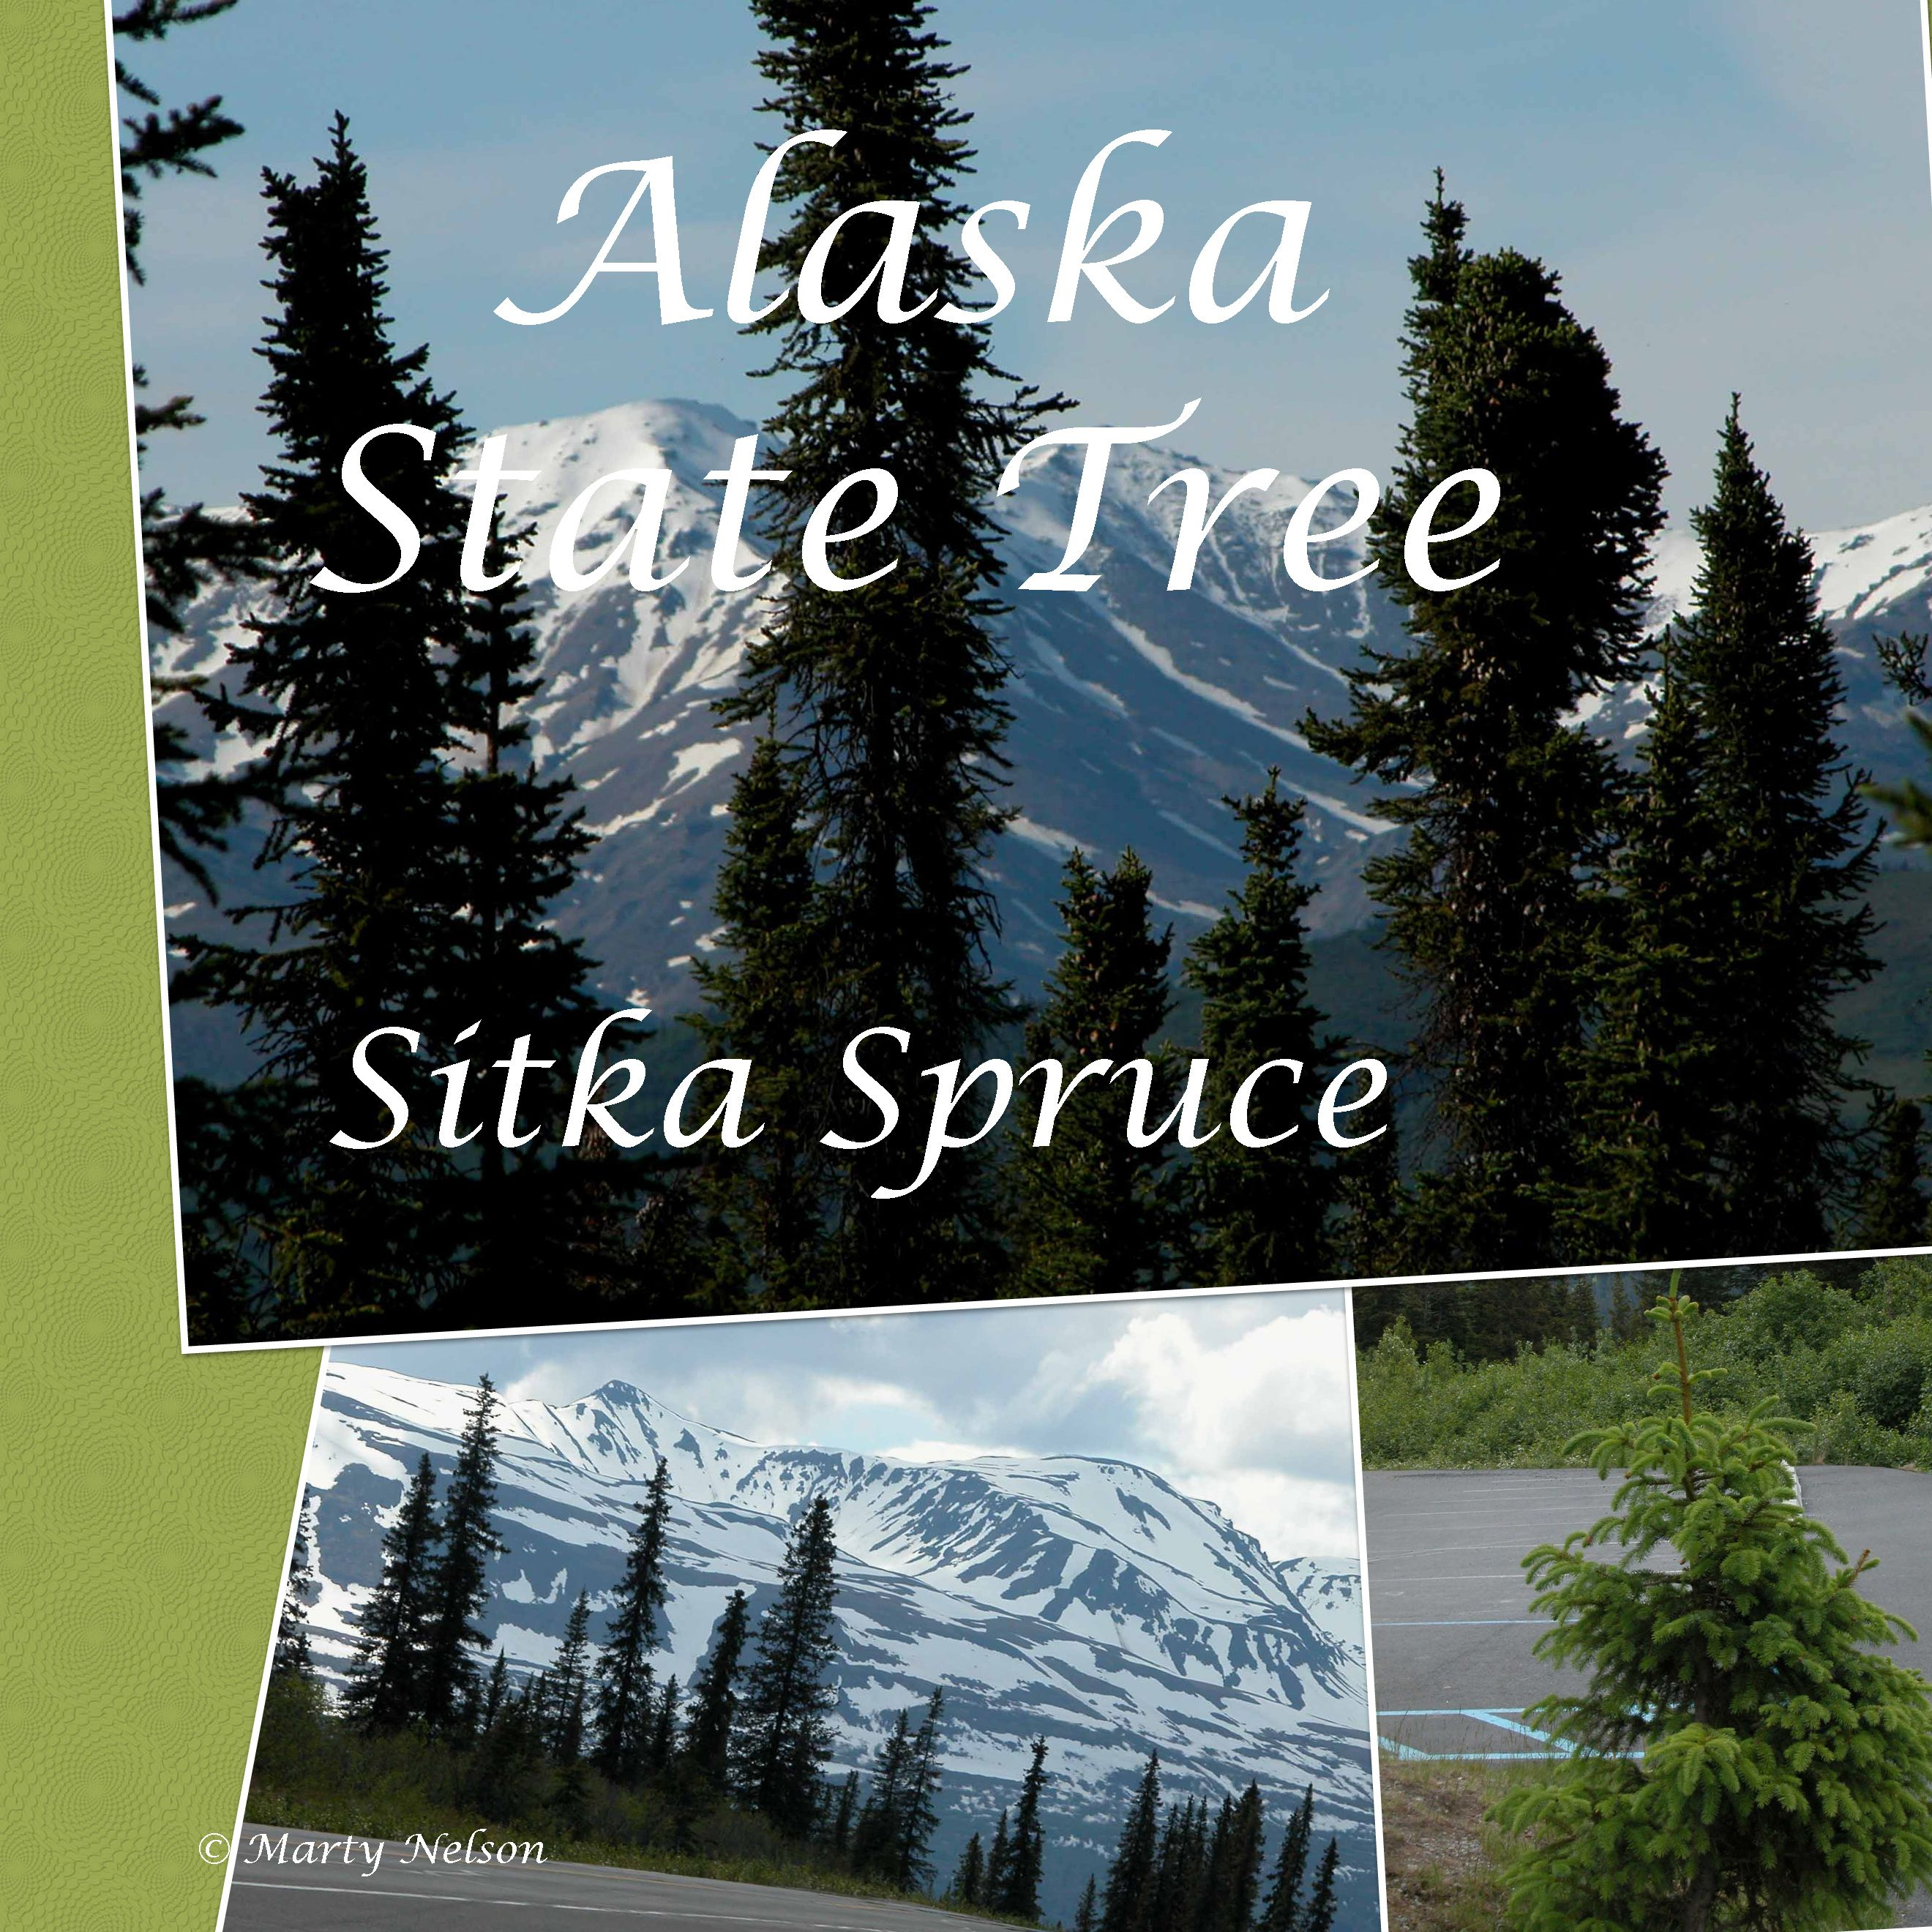 Sitka spruce alaska state tree photo copyright by marty nelson find this pin and more on usa state symbols free biocorpaavc Image collections